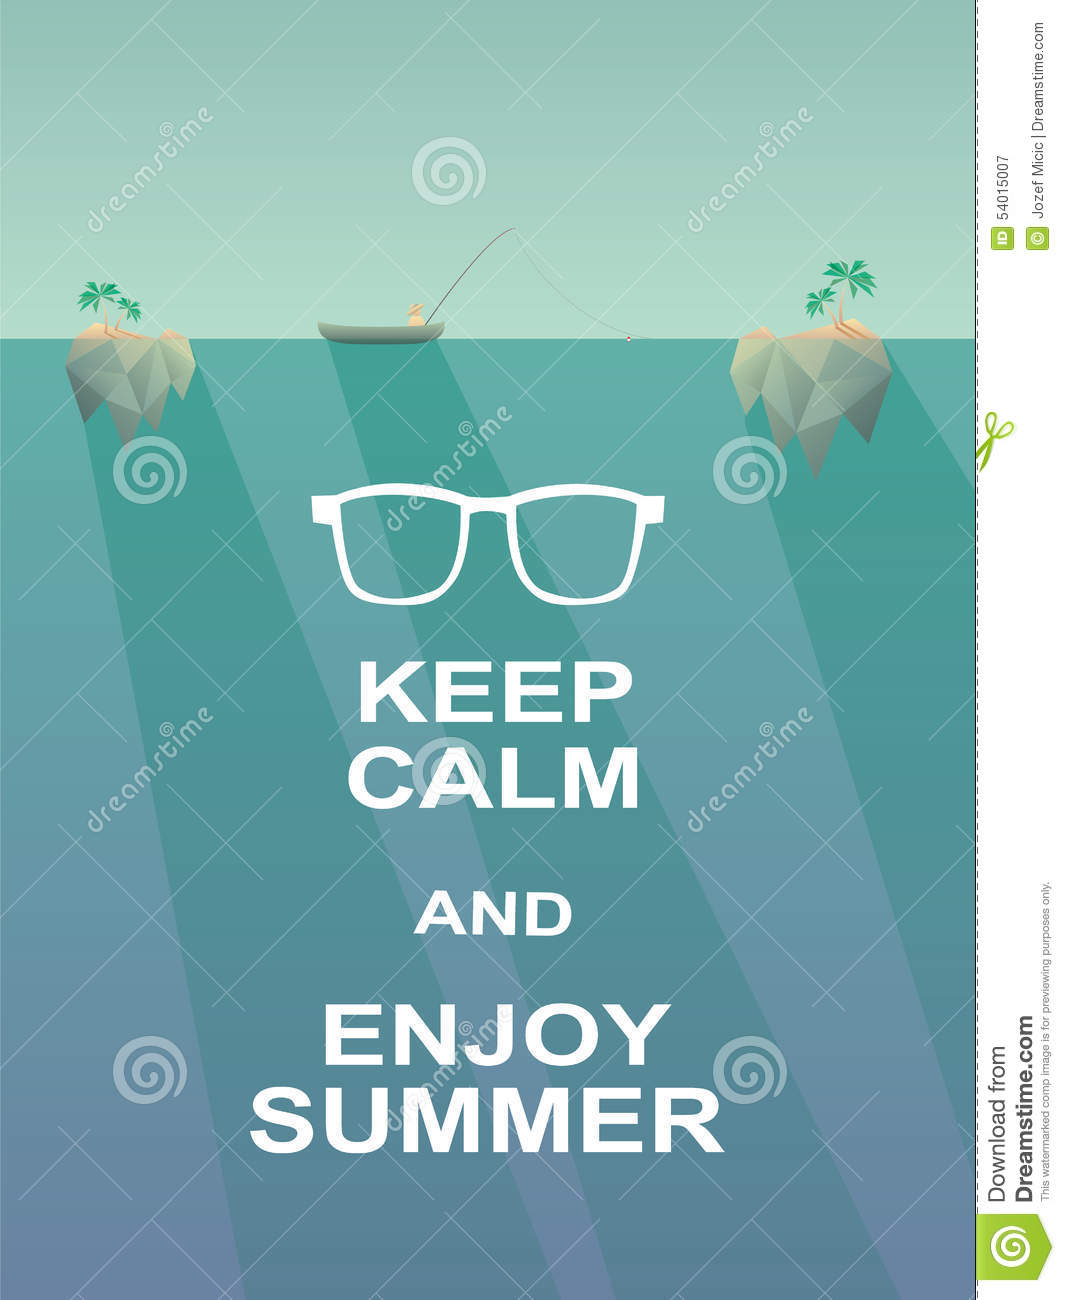 Keep Calm And Enjoy Summer Motivational Poster Stock Vector - Image: 54015007